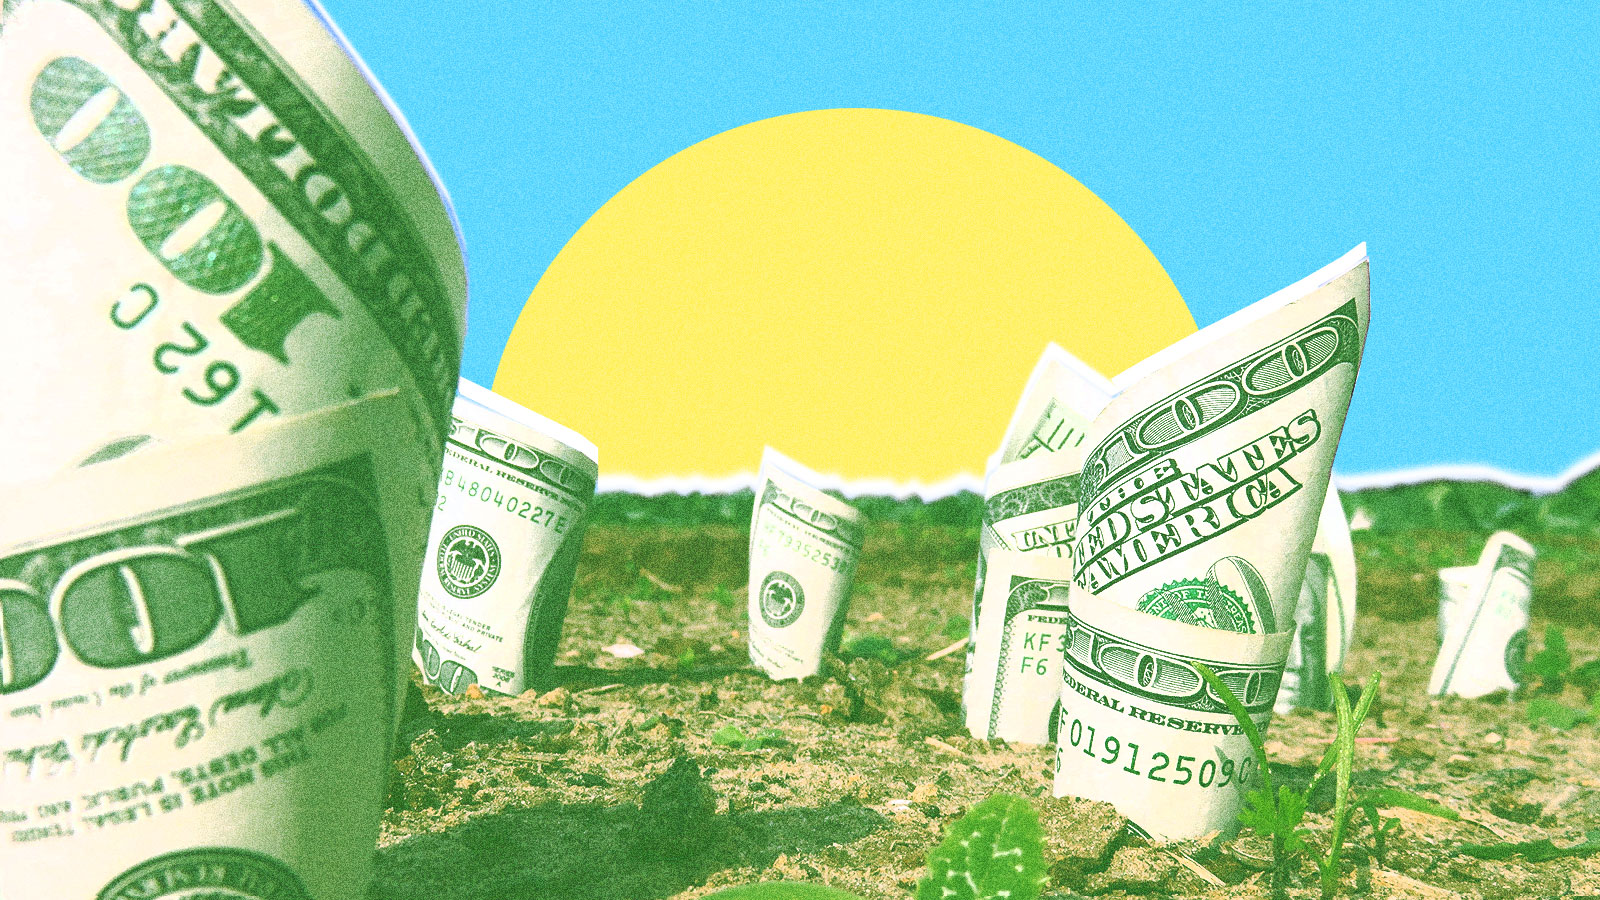 A field with one hundred dollar bills growing out of the ground to represent a green stimulus.